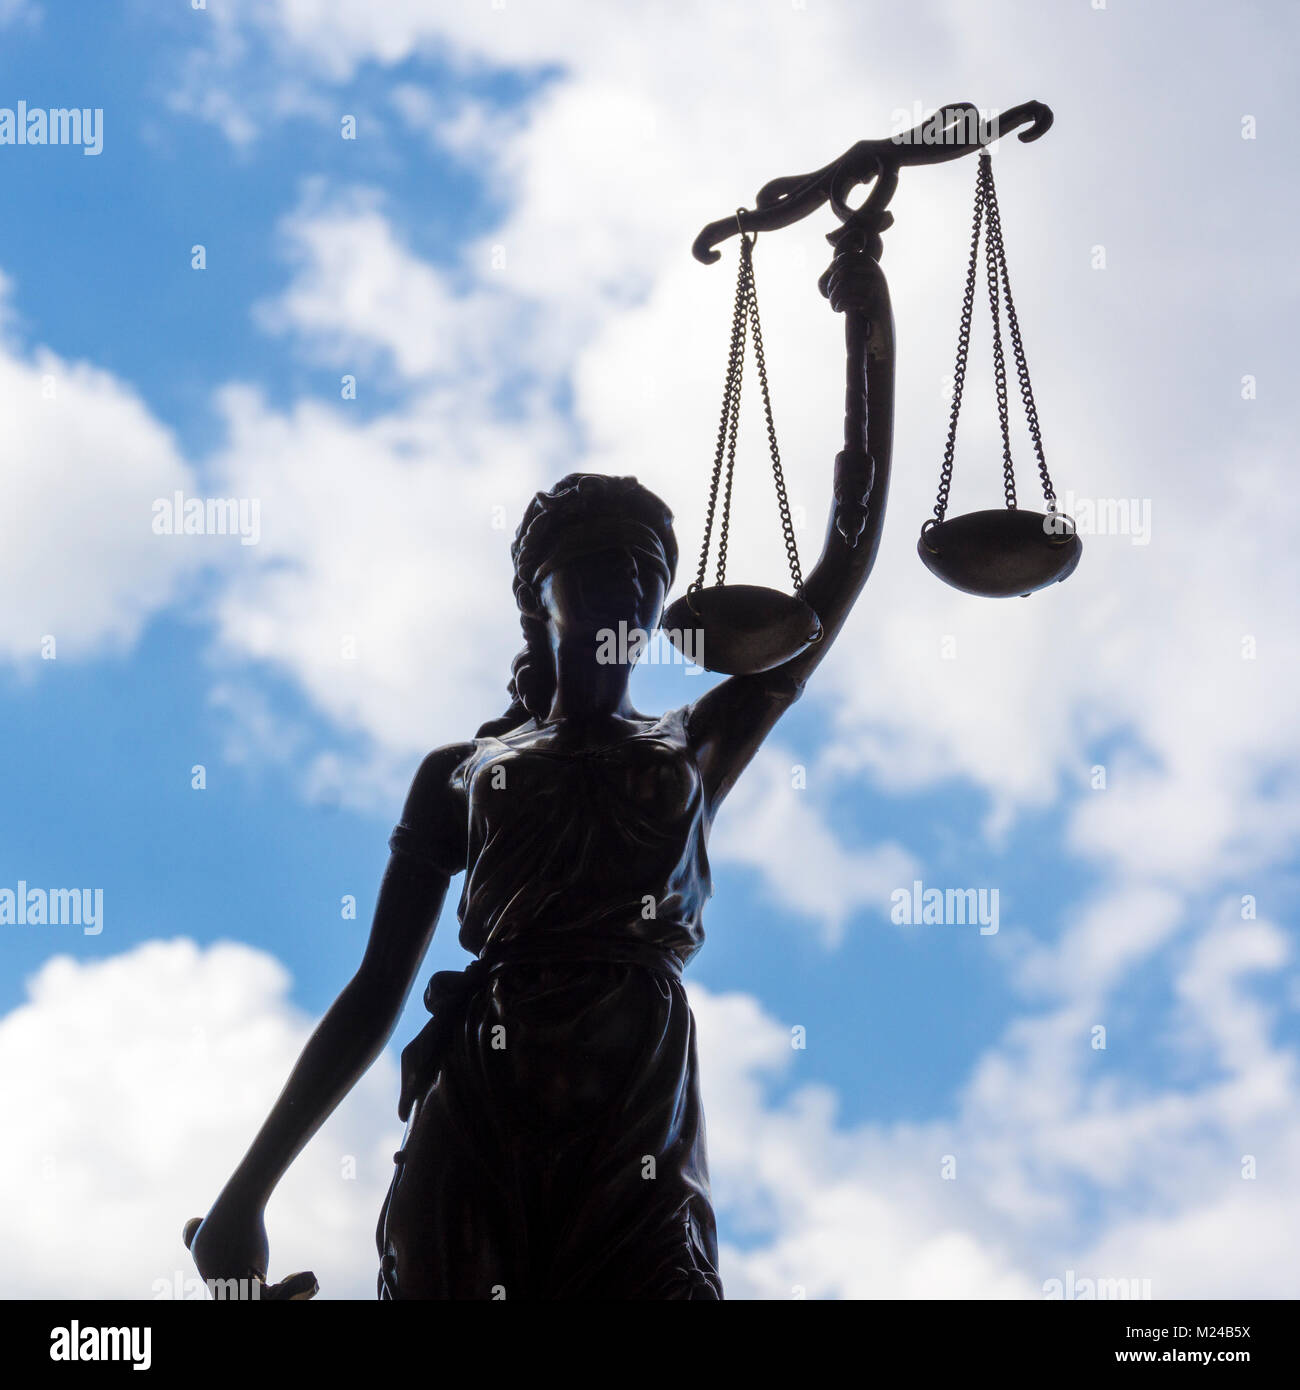 Statue of Justice with scales against the sky and clouds. Legal law, advice and justice concept - Stock Image